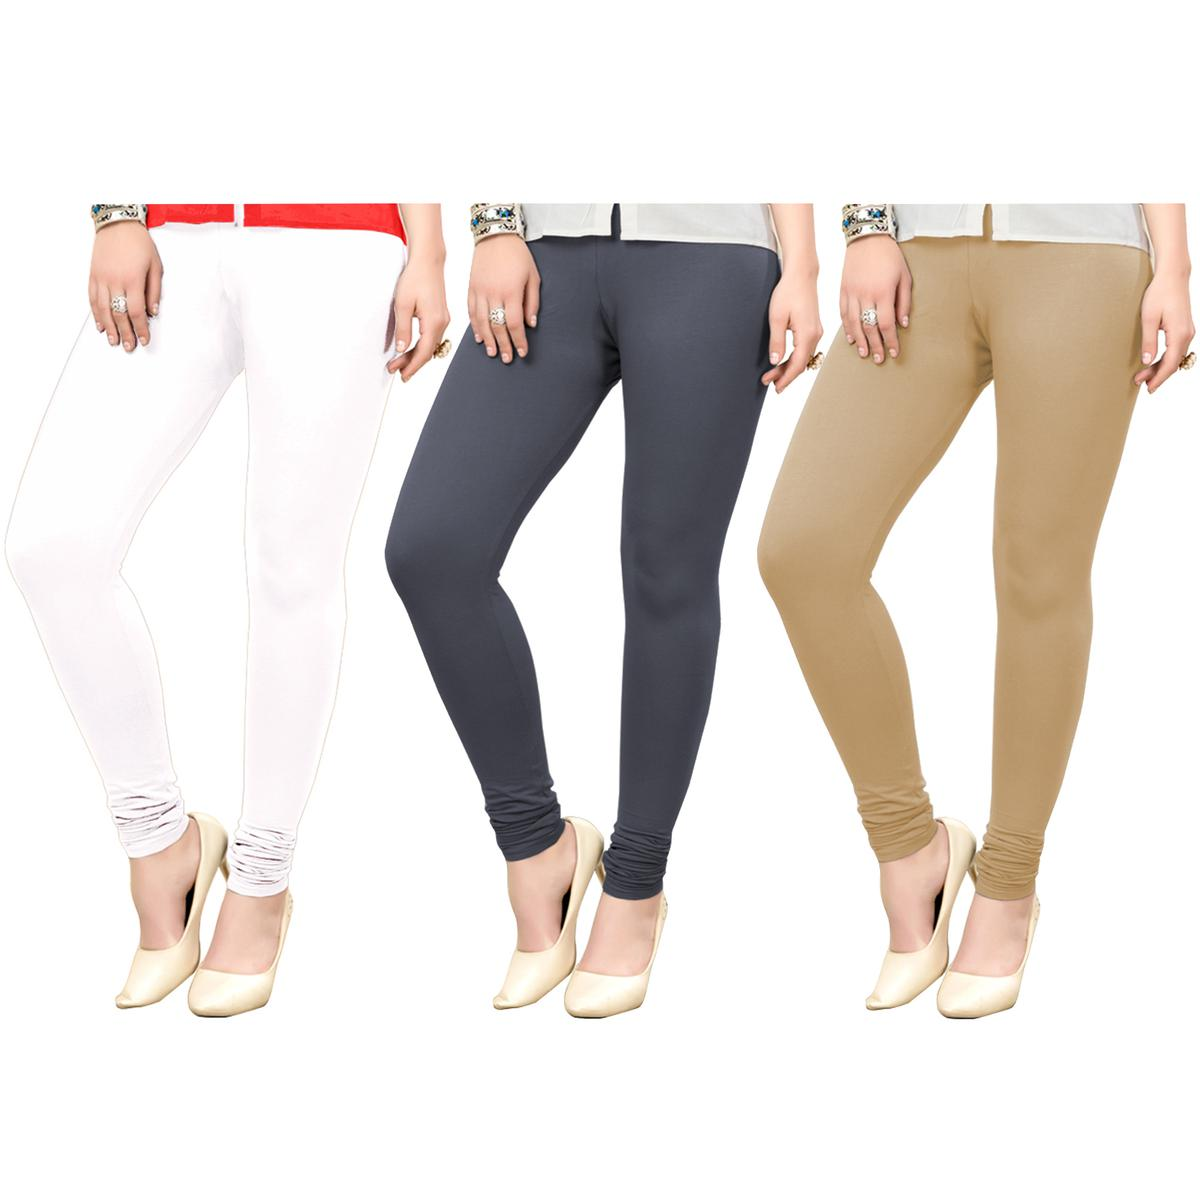 Engrossing Casual Wear Ankle Length Cotton Leggings - Pack of 3